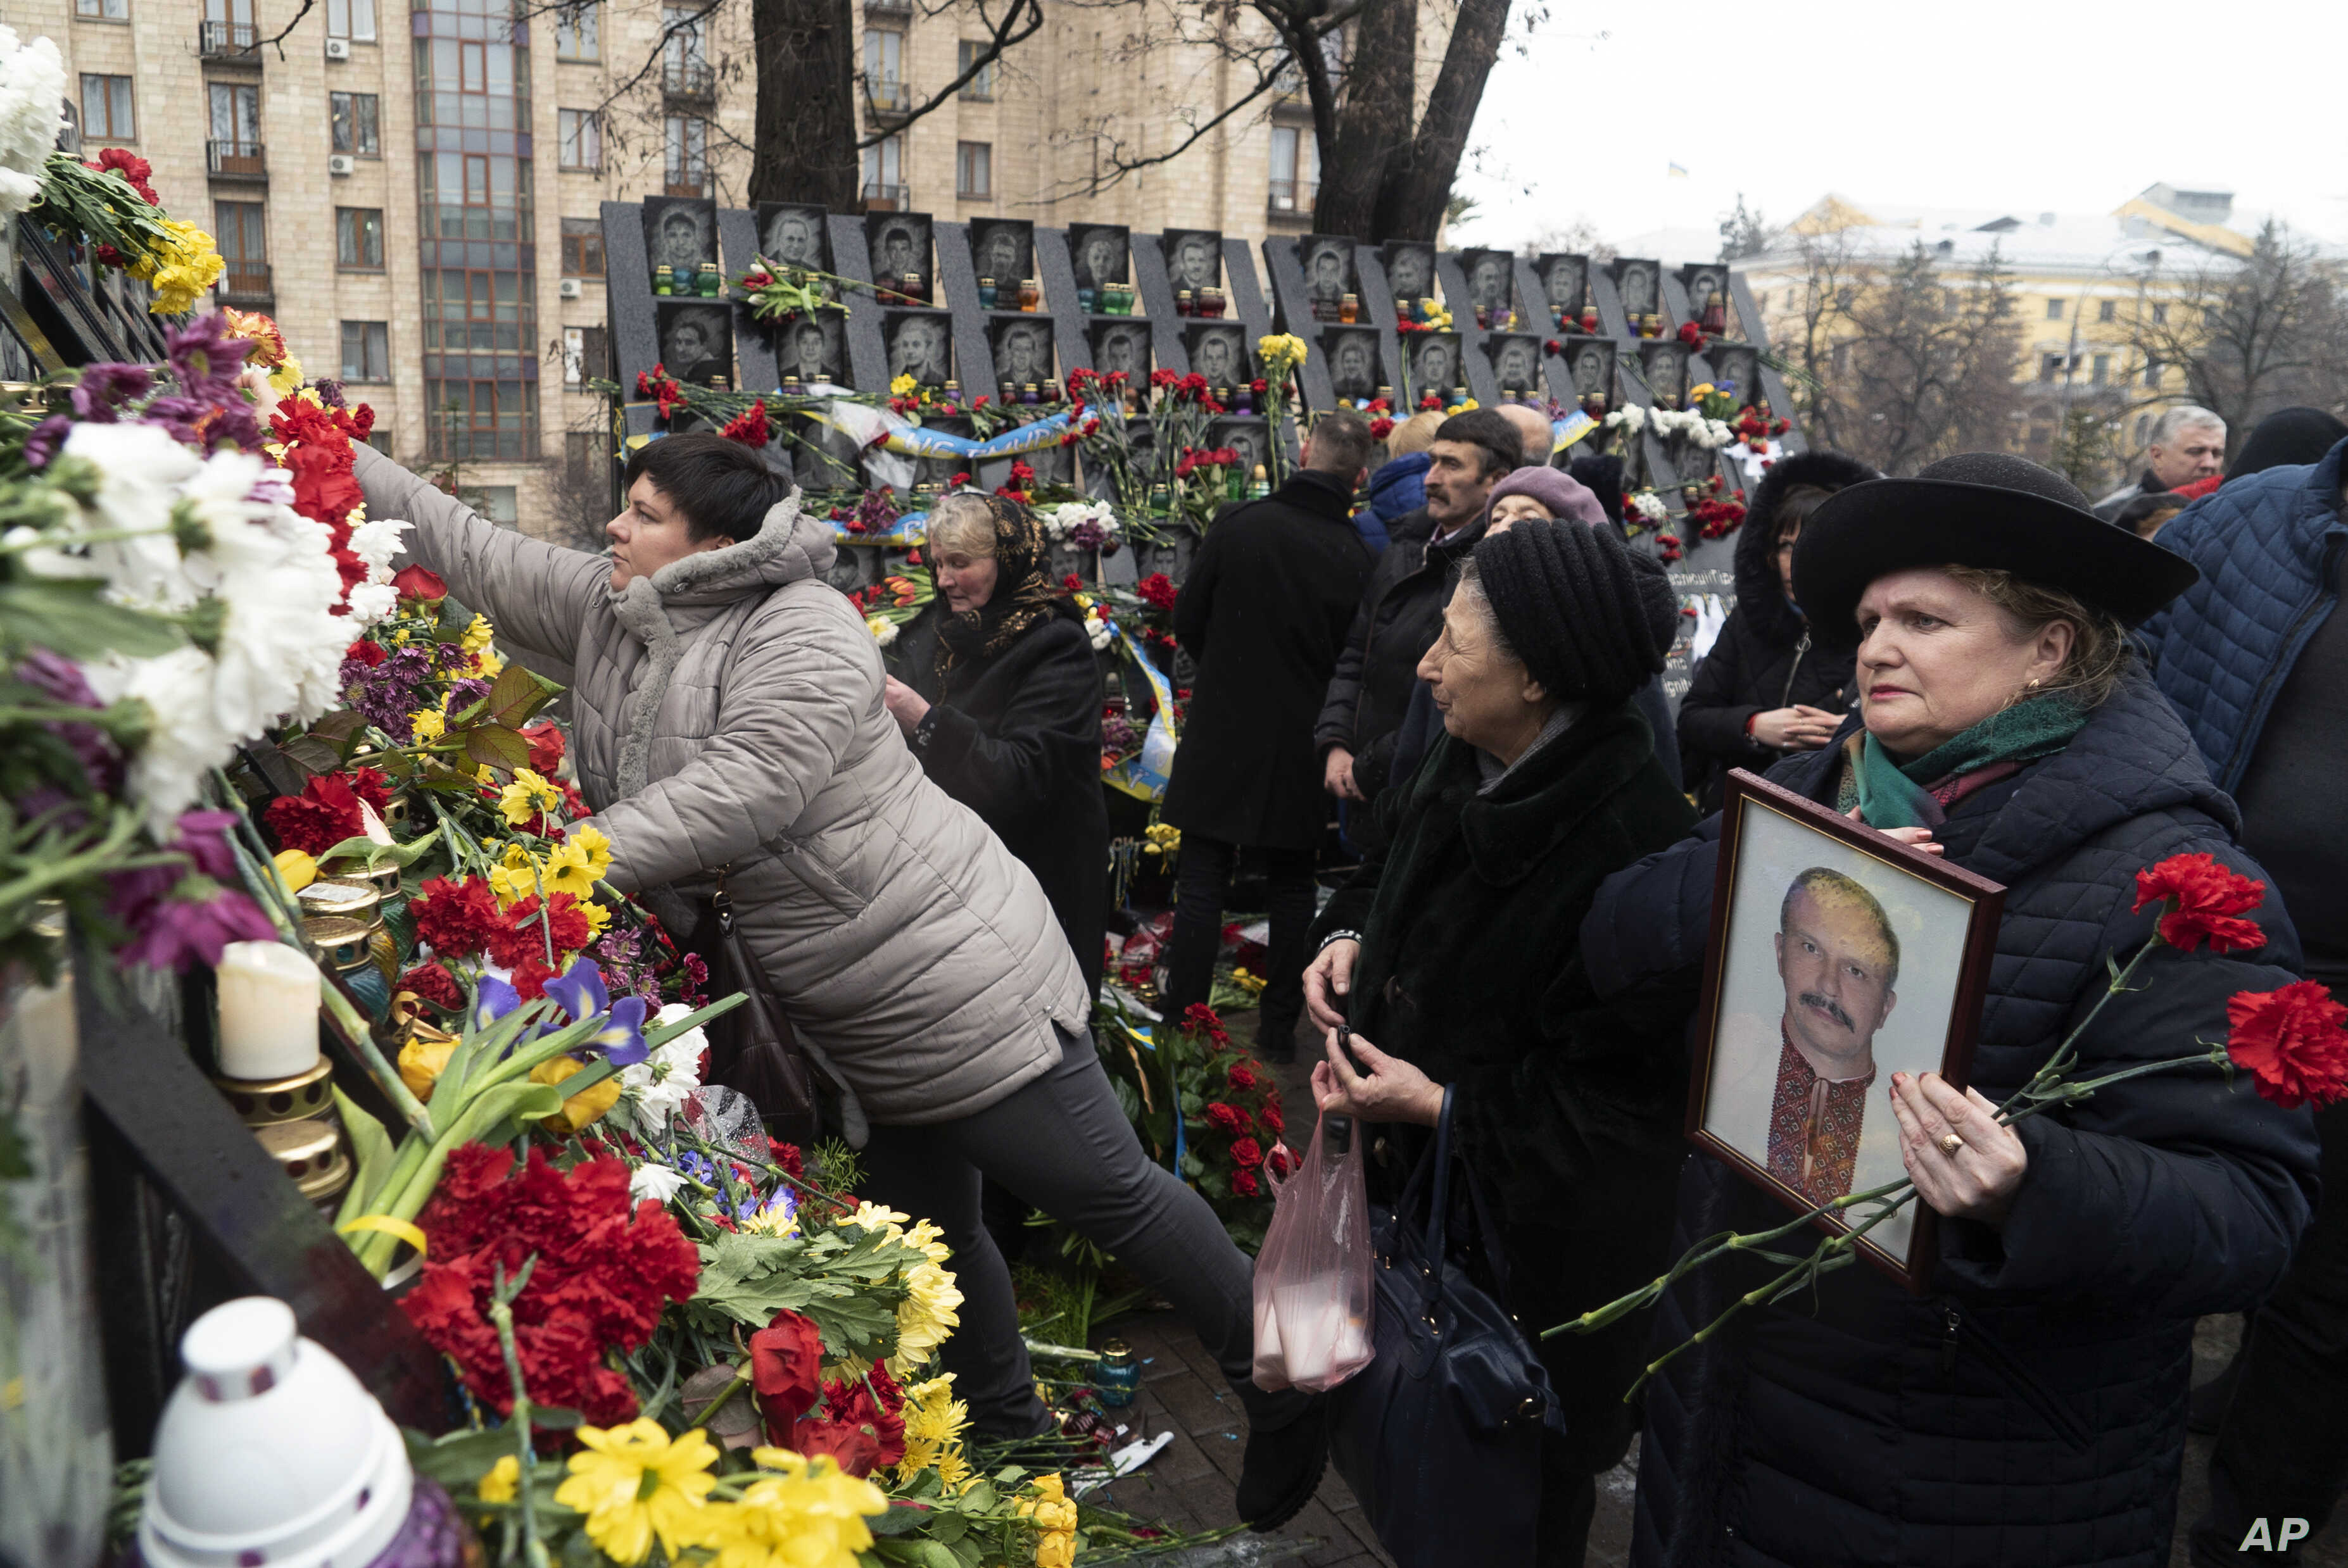 People place flowers to pay their respect at a memorial dedicated to people who died in clashes in early 2014 with security forces in central Kyiv during mass protests that ousted pro-Russia president Viktor Yanukovych, at Independent Square (Maidan)...